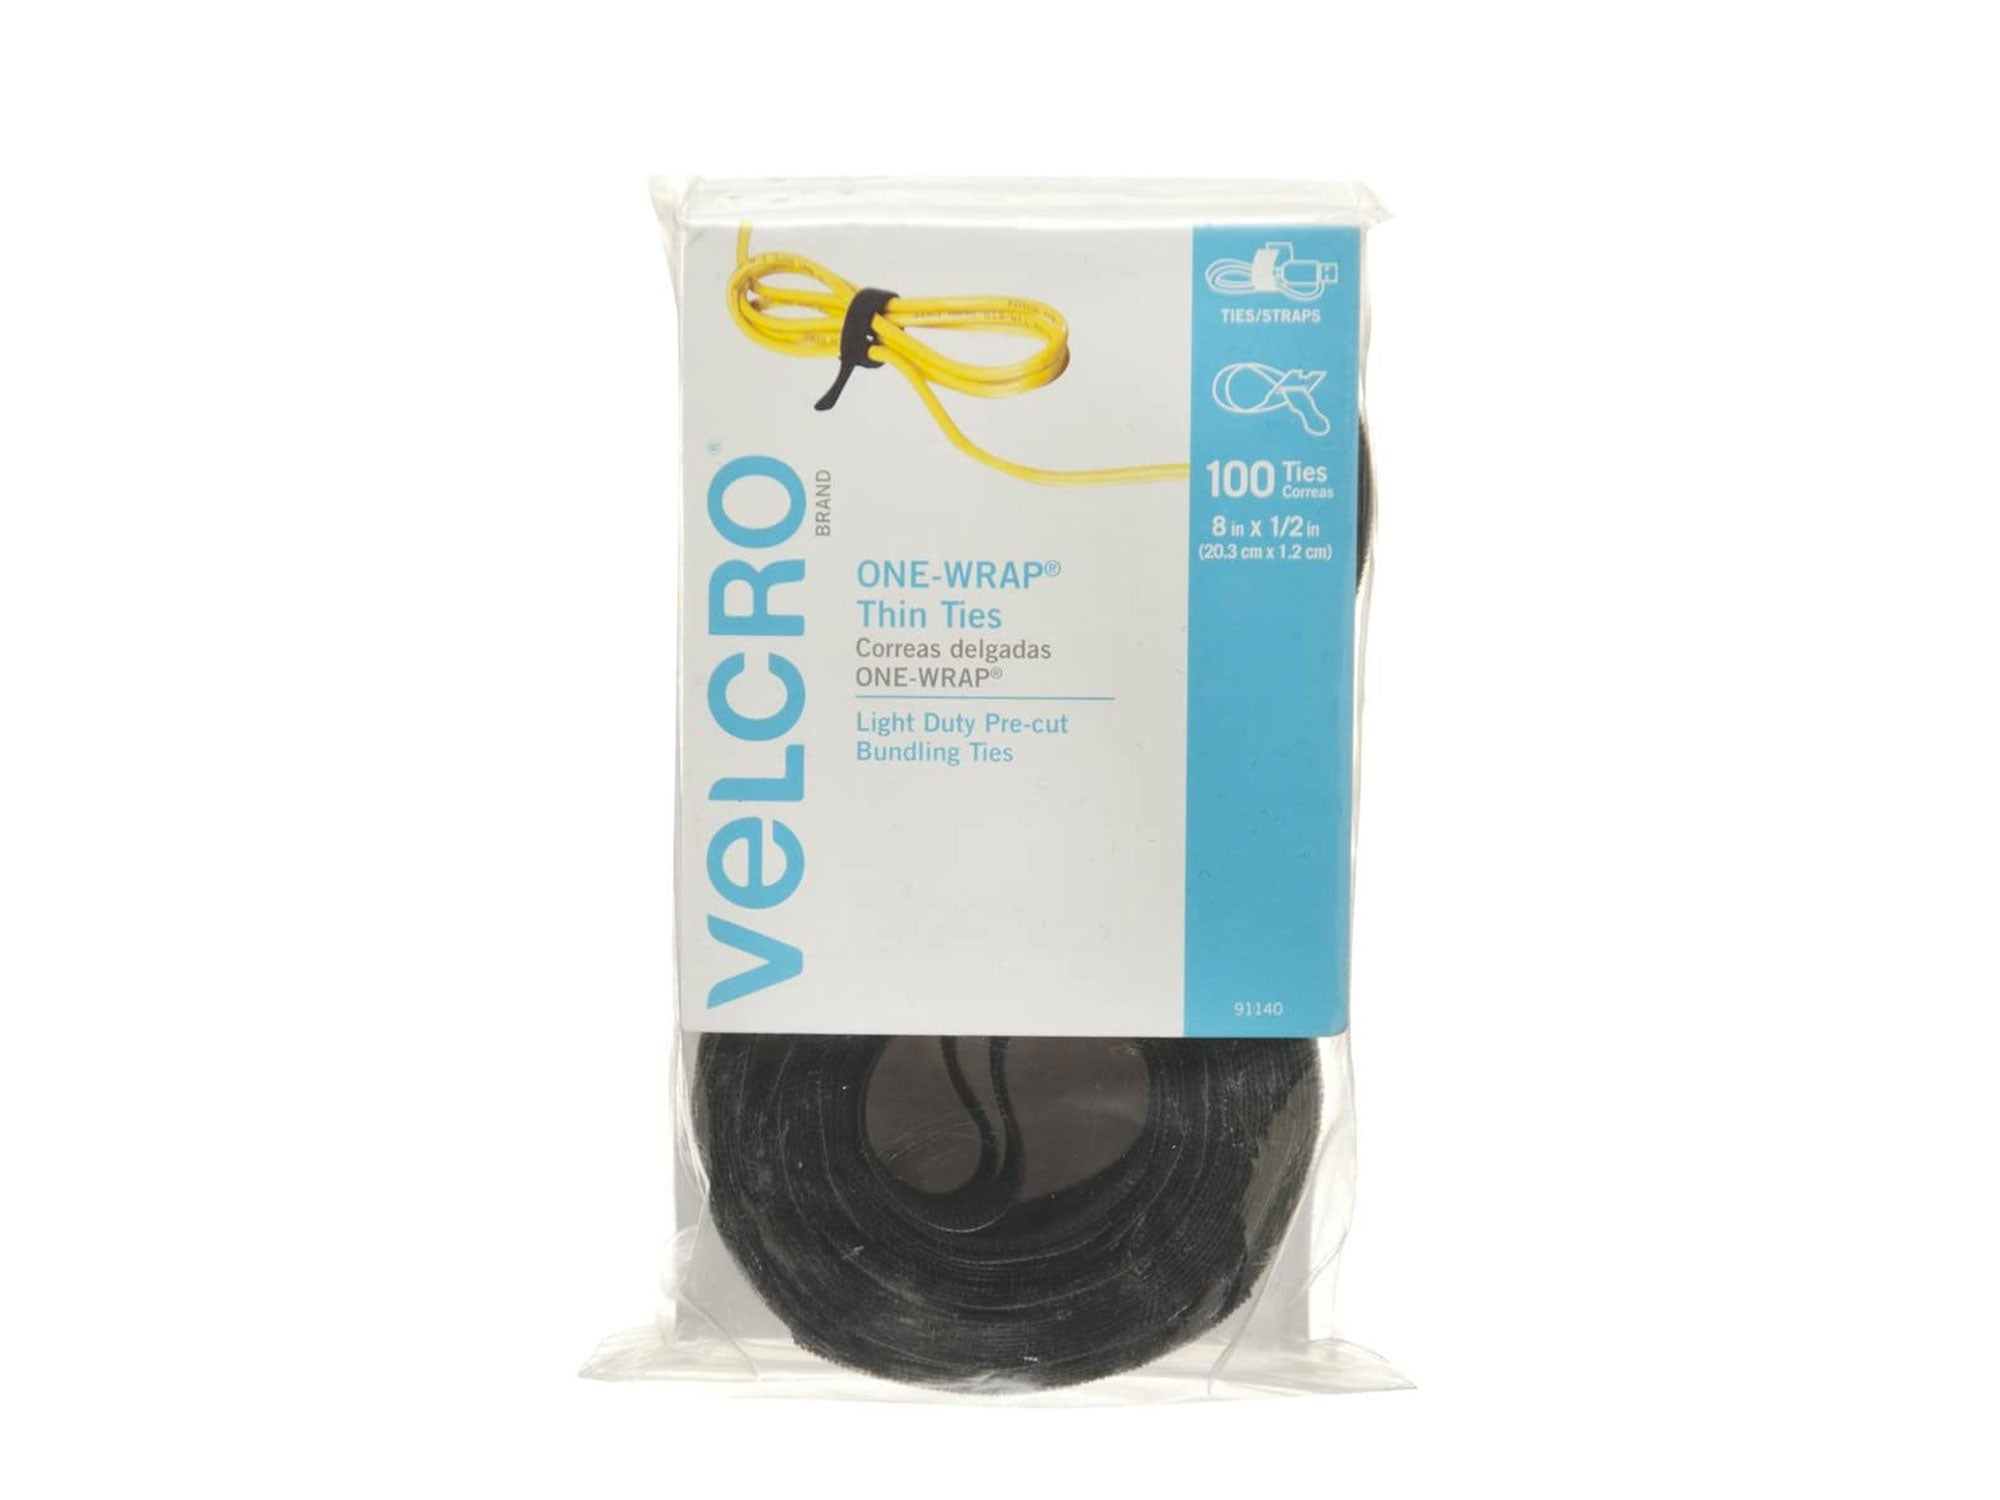 VELCRO Brand ONE-WRAP Cable Ties